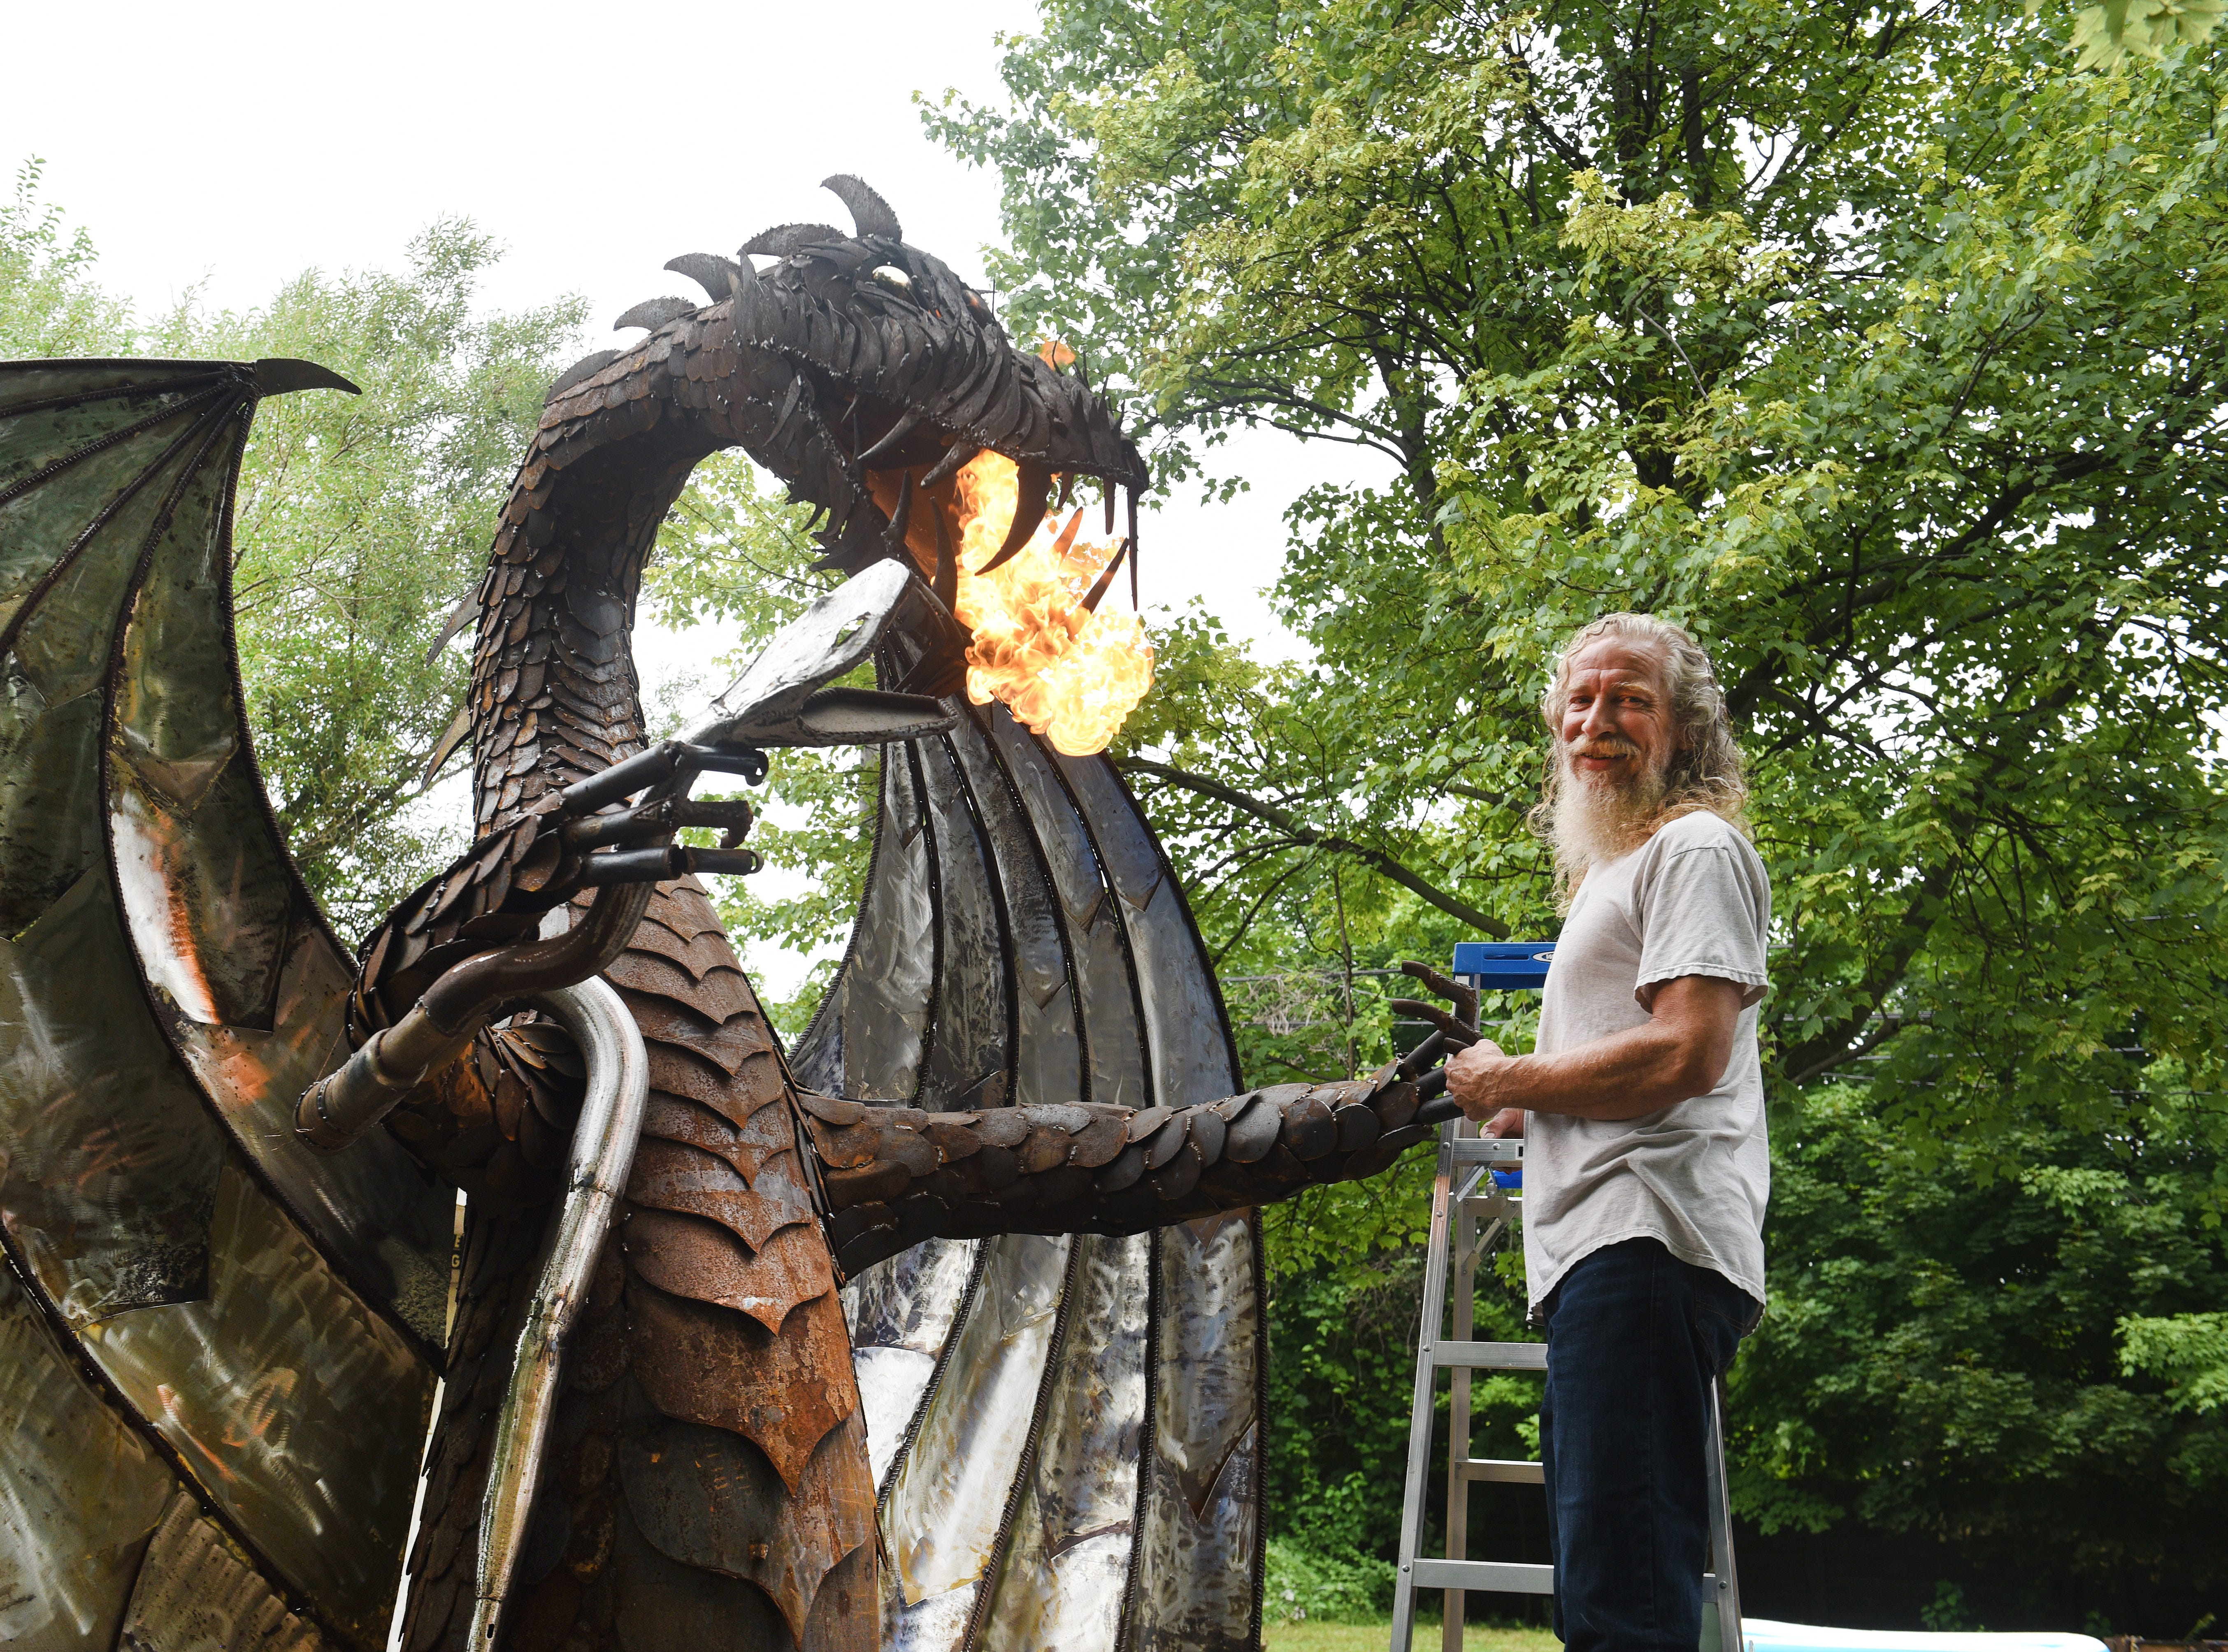 Taylor artist and metalworker Keith Coleman with his 12-foot fire breathing dragon on Thursday, August 16, 2018.